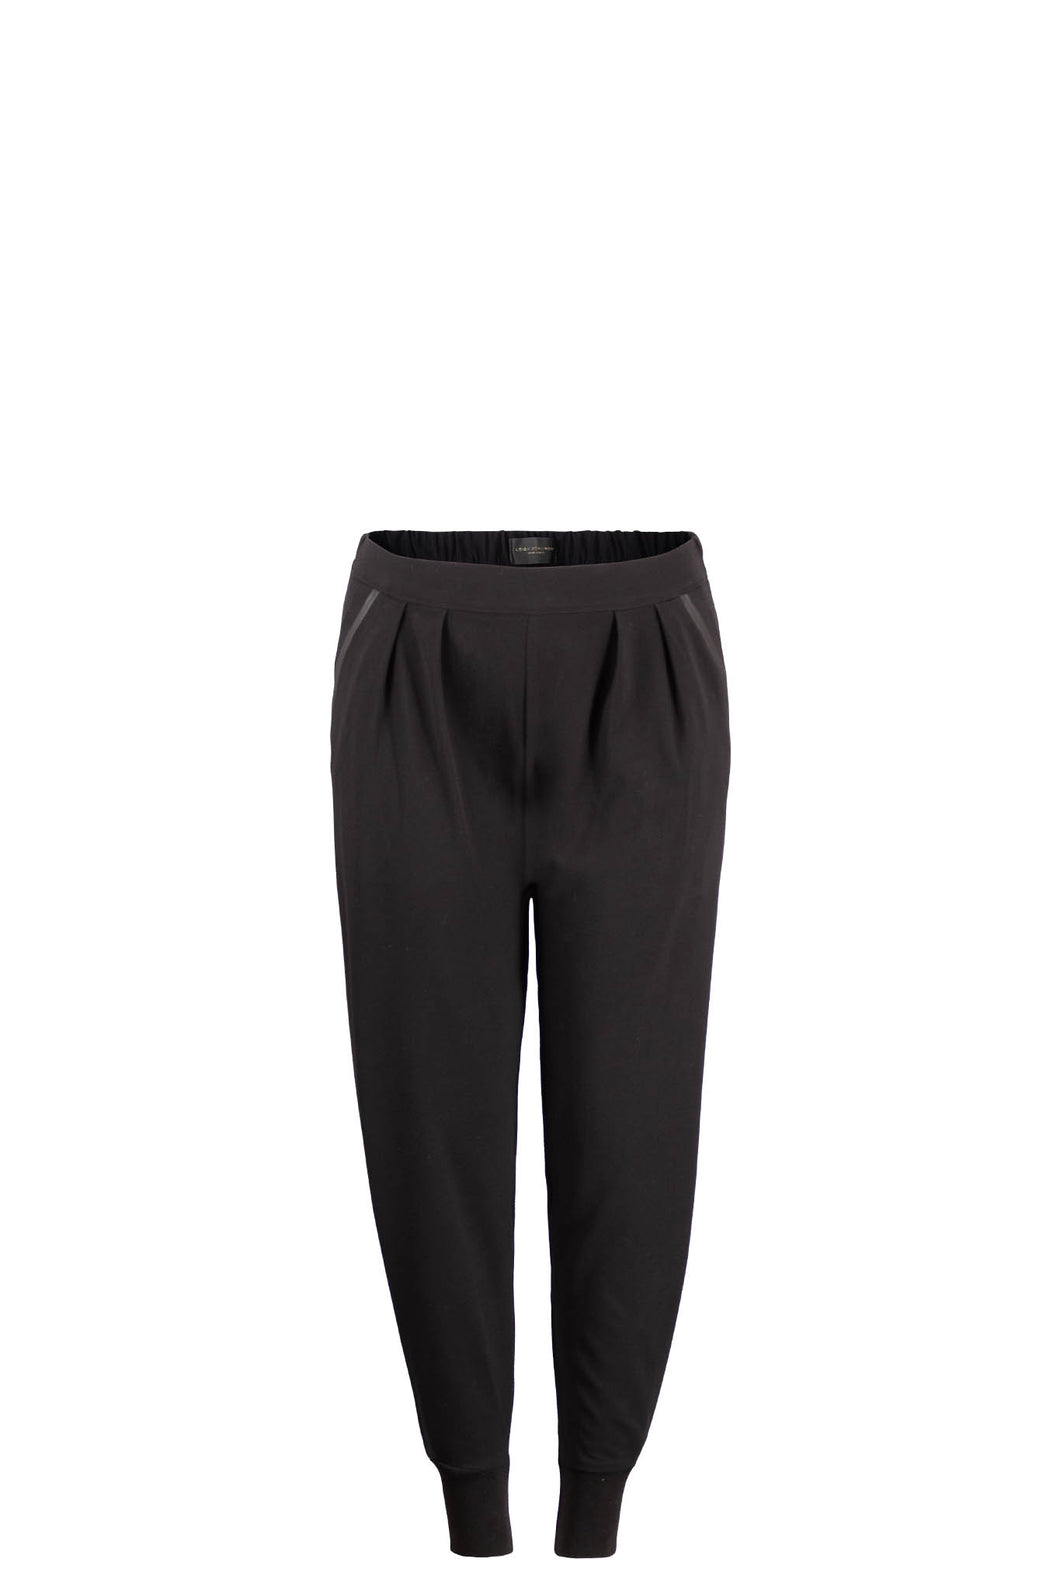 KAREN ZOID Pants Black